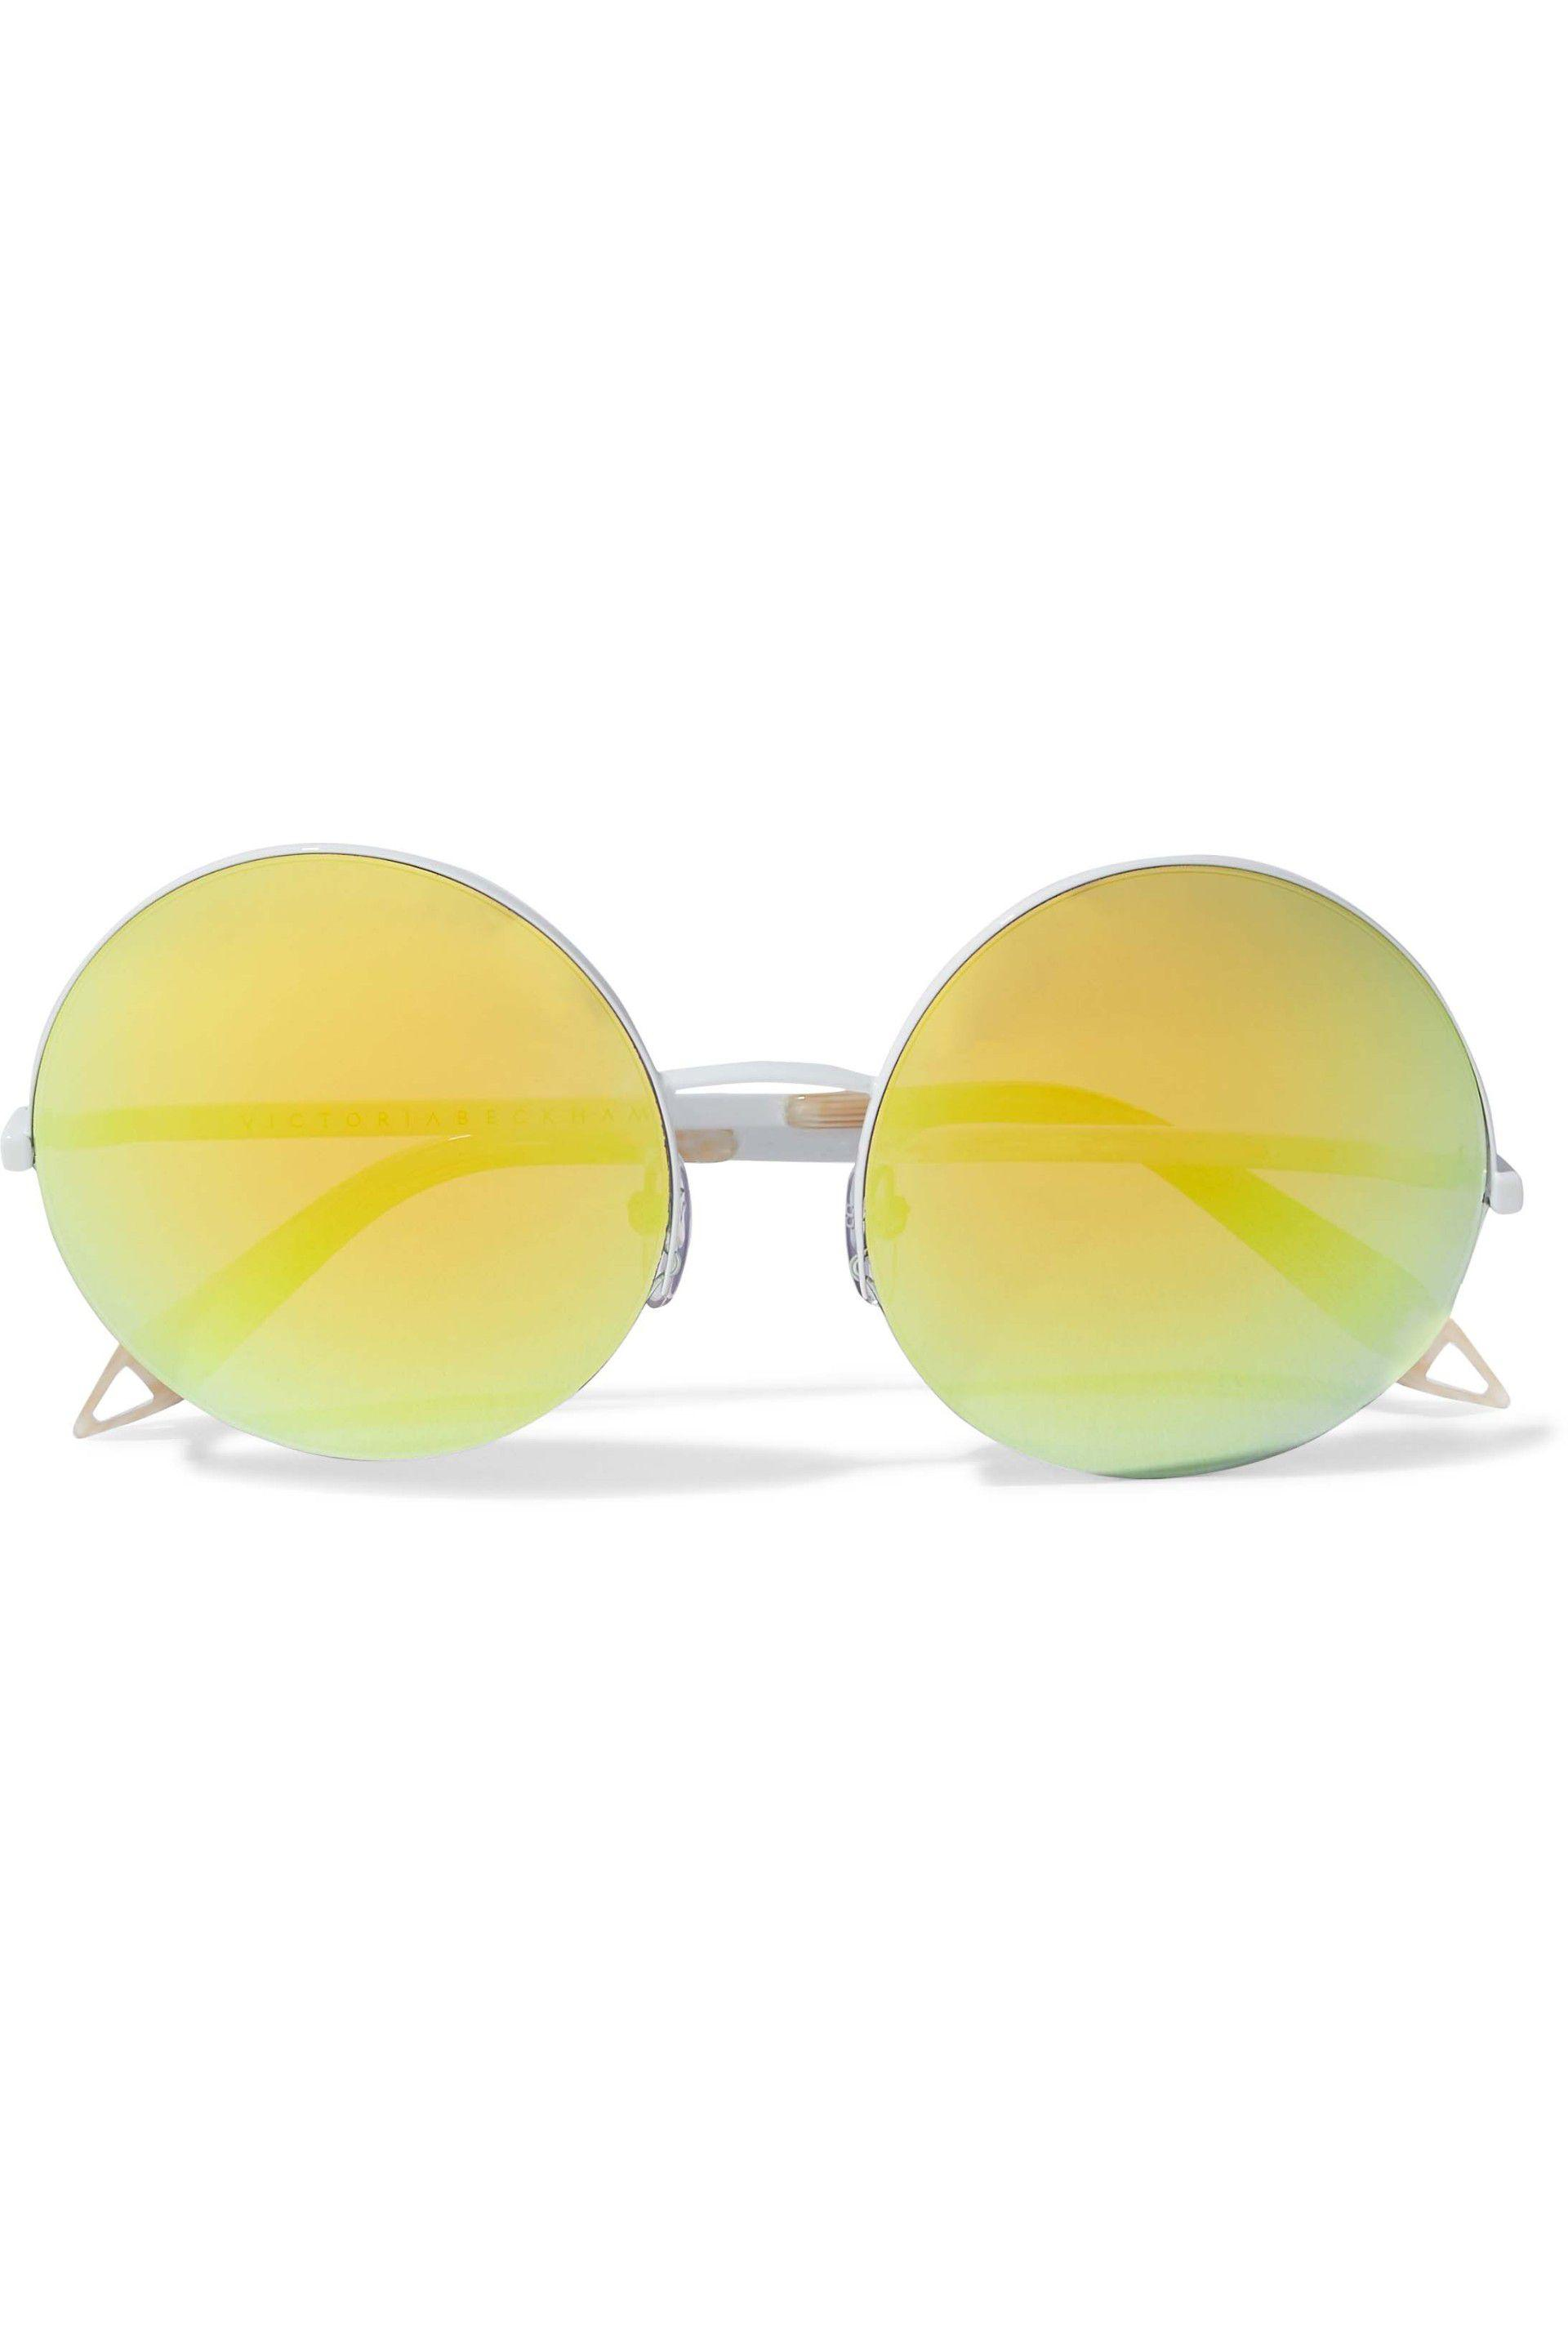 729eb5201f45 Gallery. Previously sold at: THE OUTNET.COM · Women's Mirrored Sunglasses